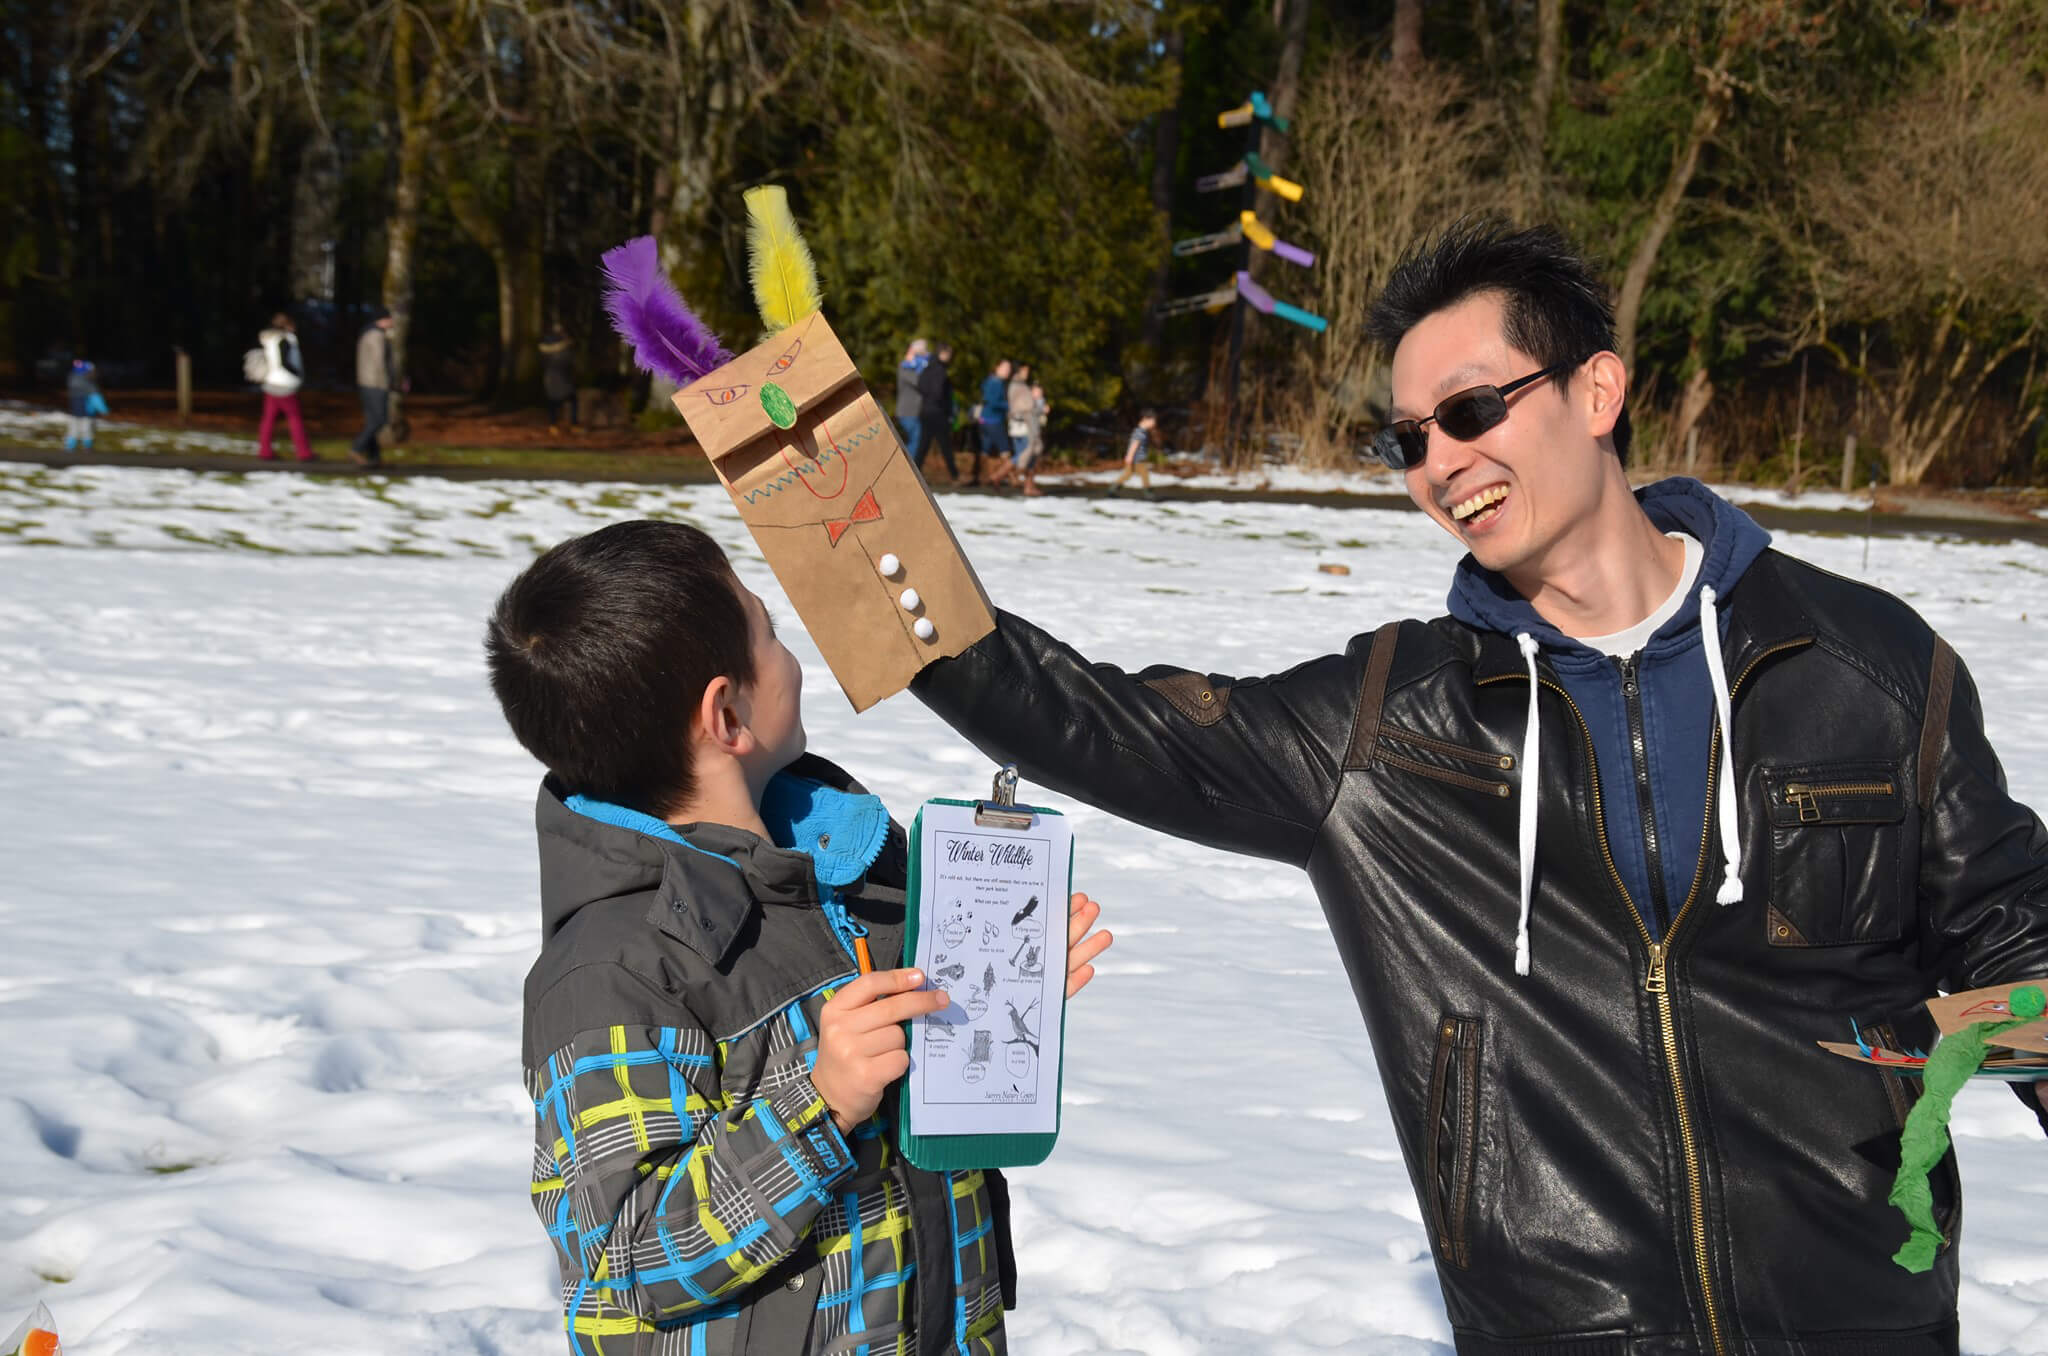 Family Day at Surrey Nature Centre